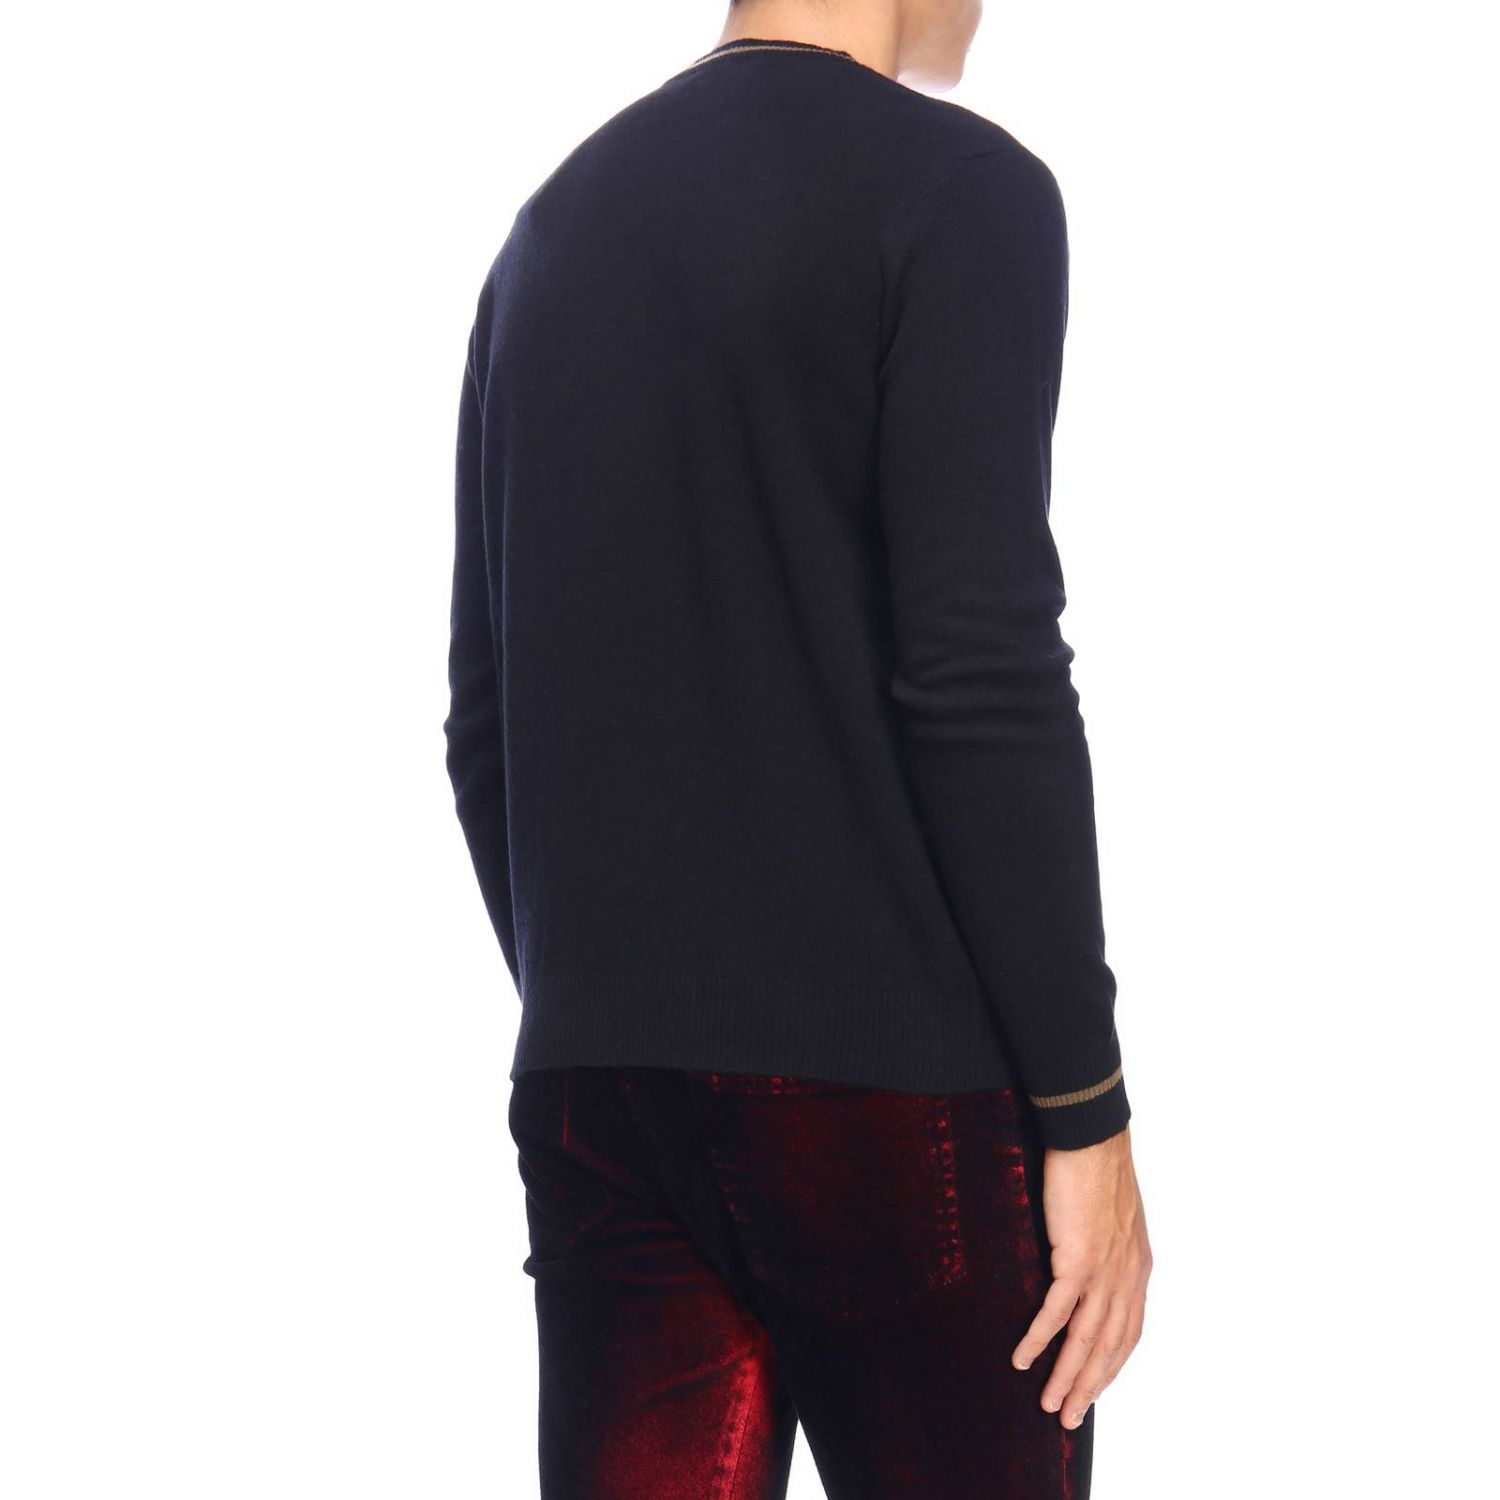 Sweater men N° 21 black 3